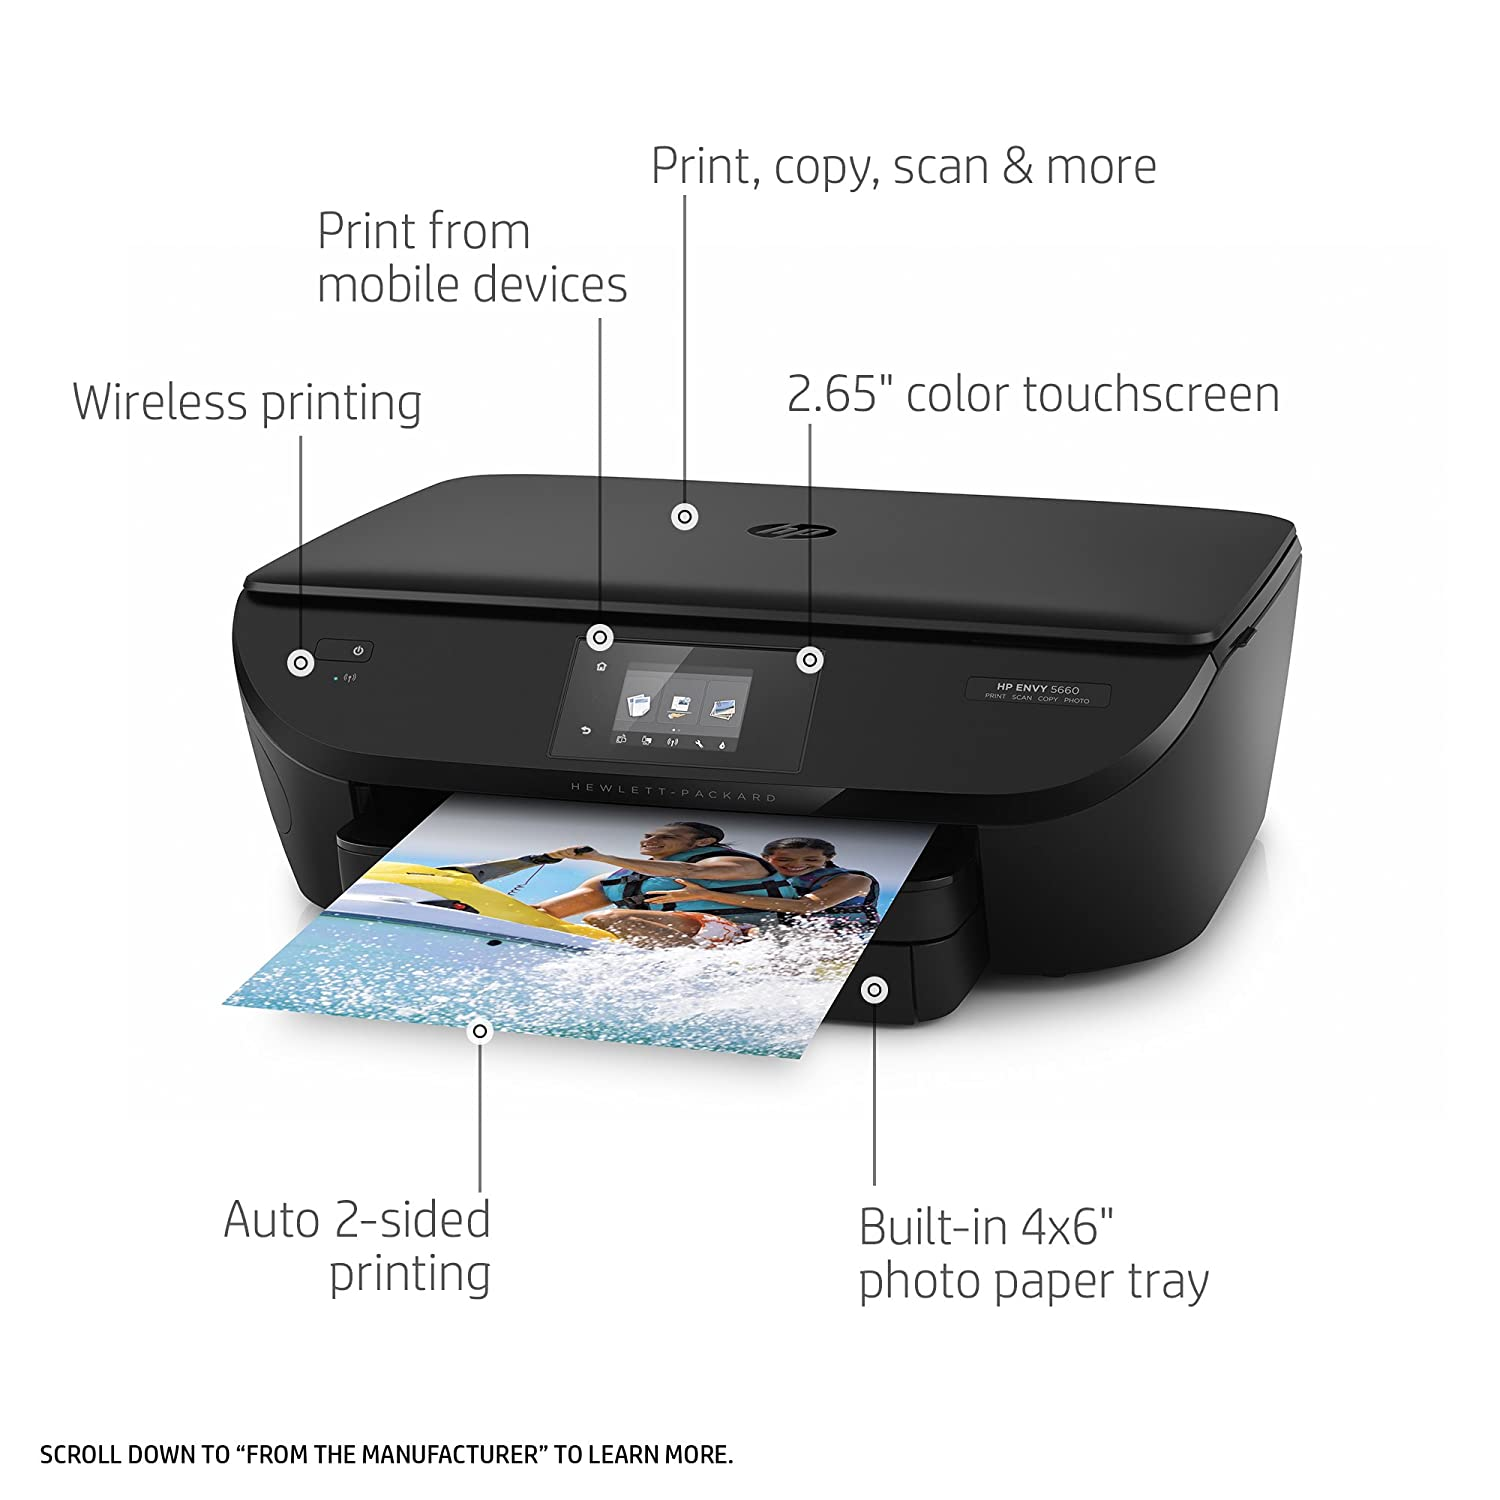 Hp Envy 5660 Wireless All In One Photo Printer With Mobile Printing Hp Instant Ink Amazon Dash Replenishment Ready F8b04a